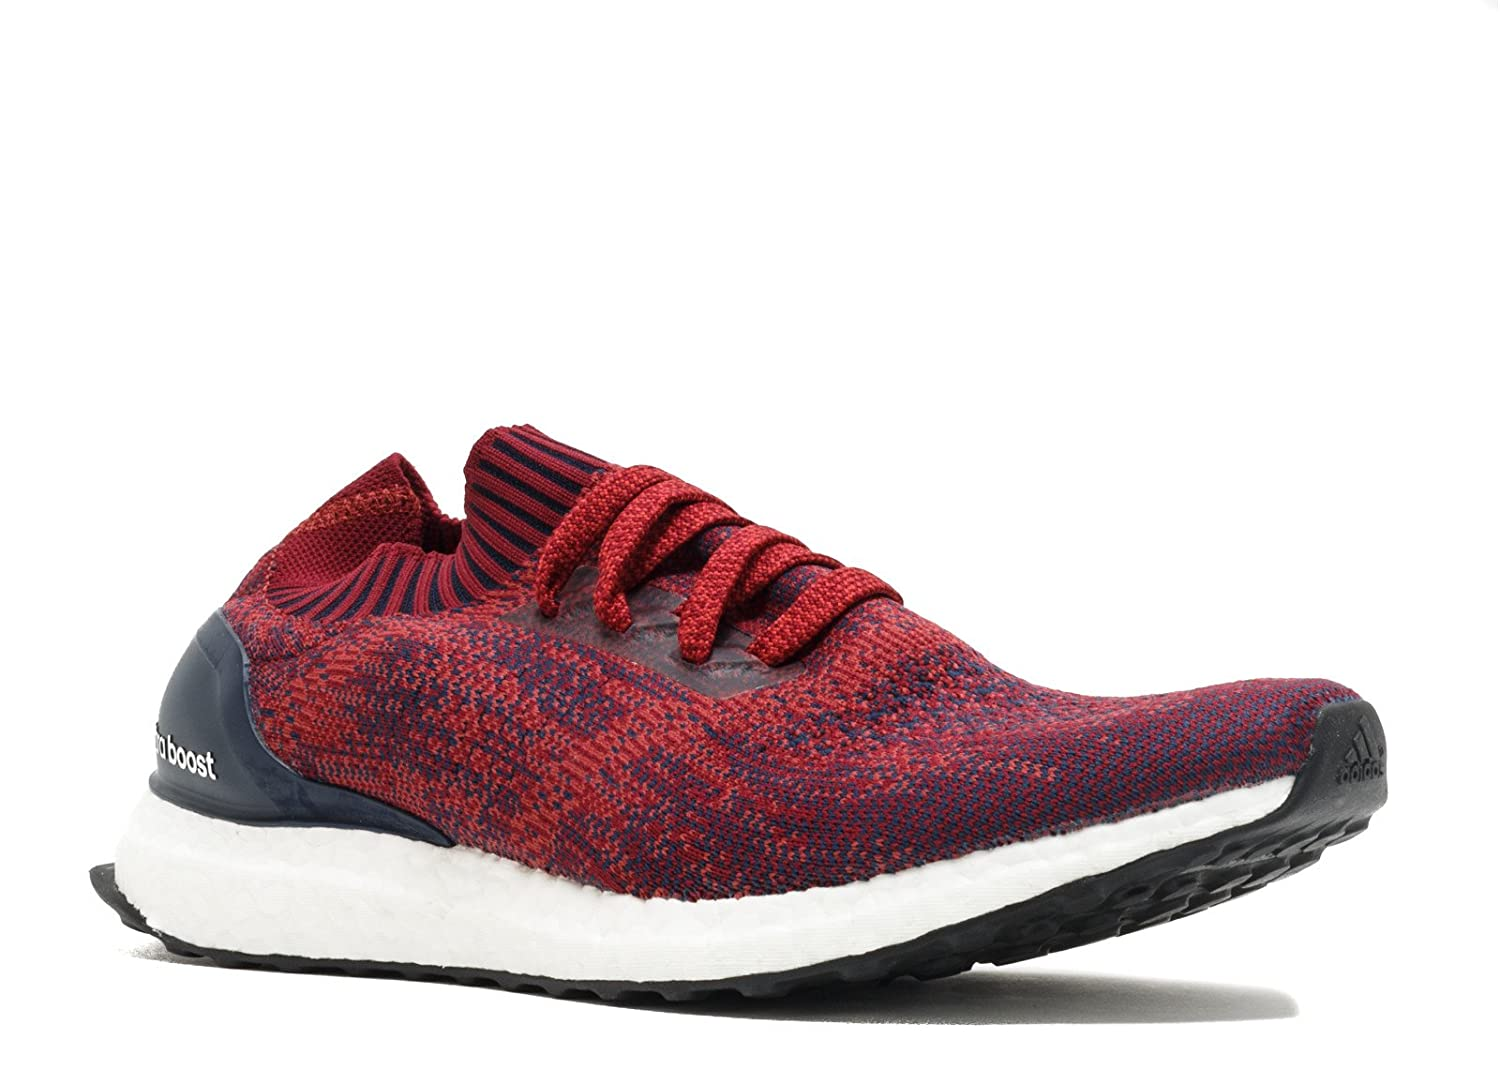 adidas Ultraboost Uncaged Shoe Men's Running B01N5OUXCW 9 D(M) US|Mystery Red/Collegiate Burgundy